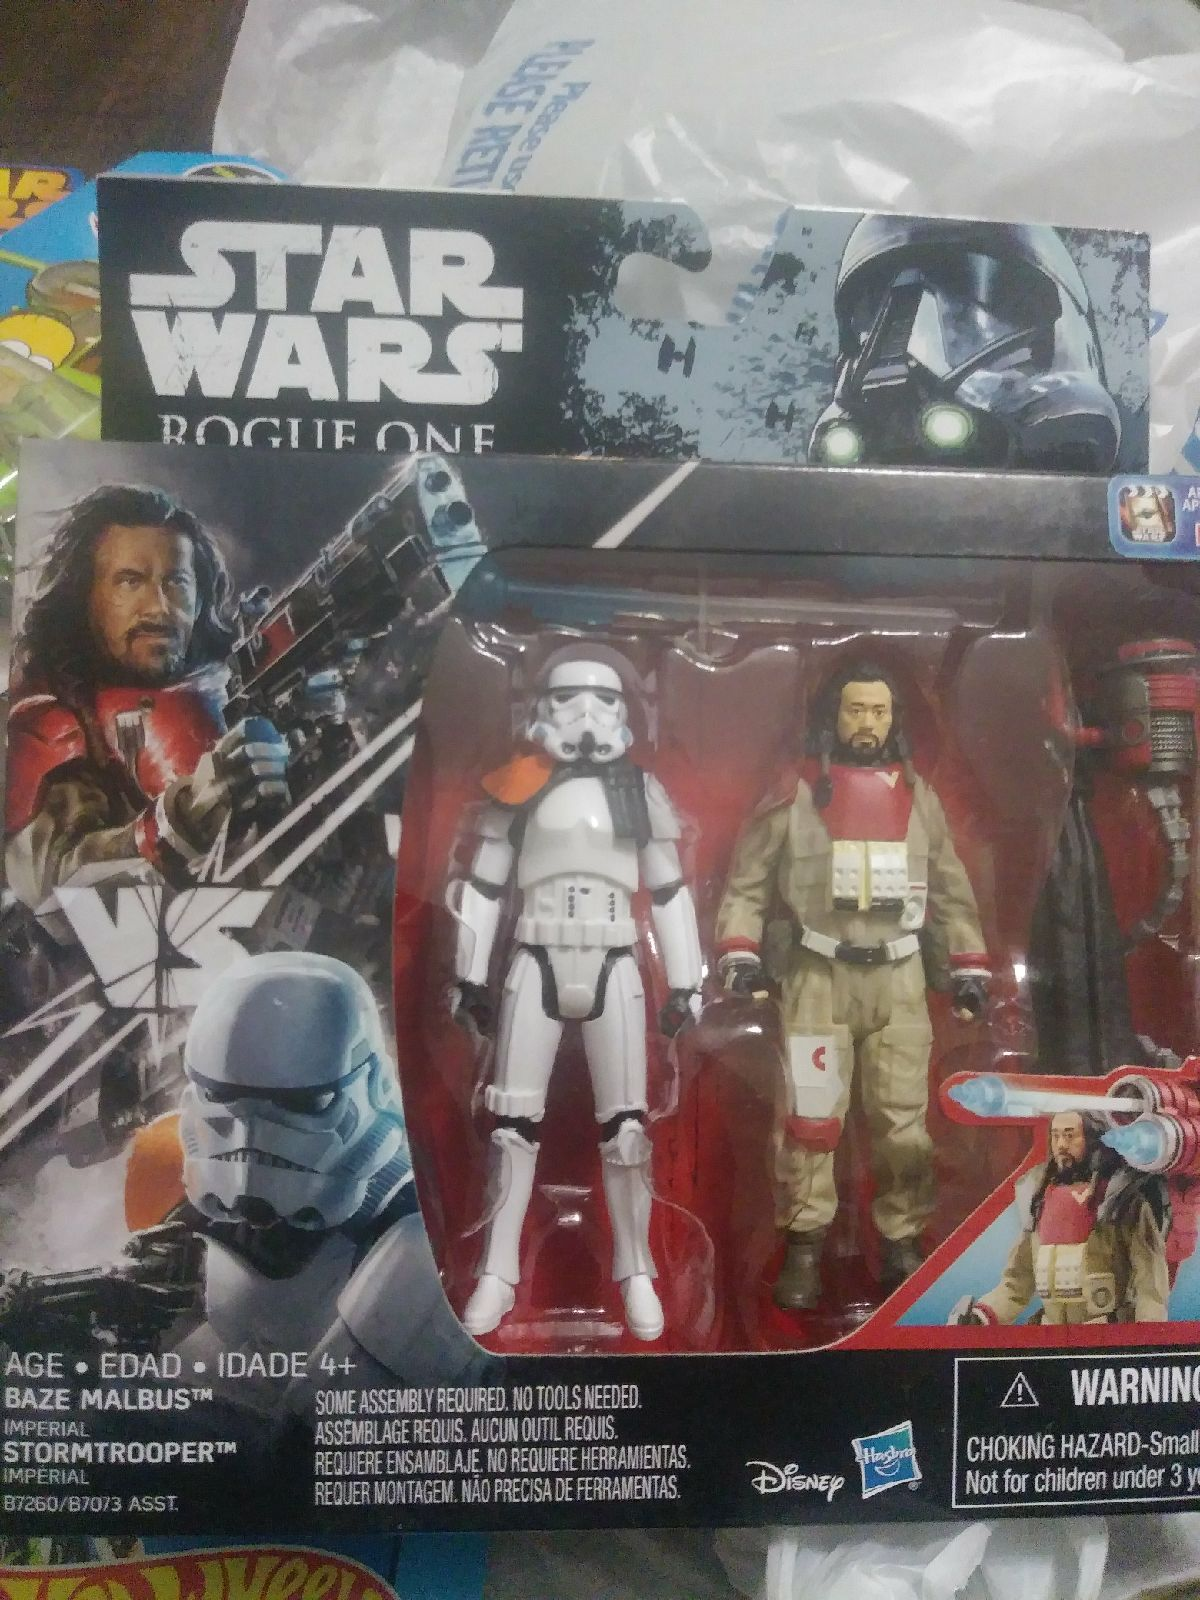 BAZE MALBUS /& IMPERIAL STORMTROOPER STAR WARS ROGUE ONE